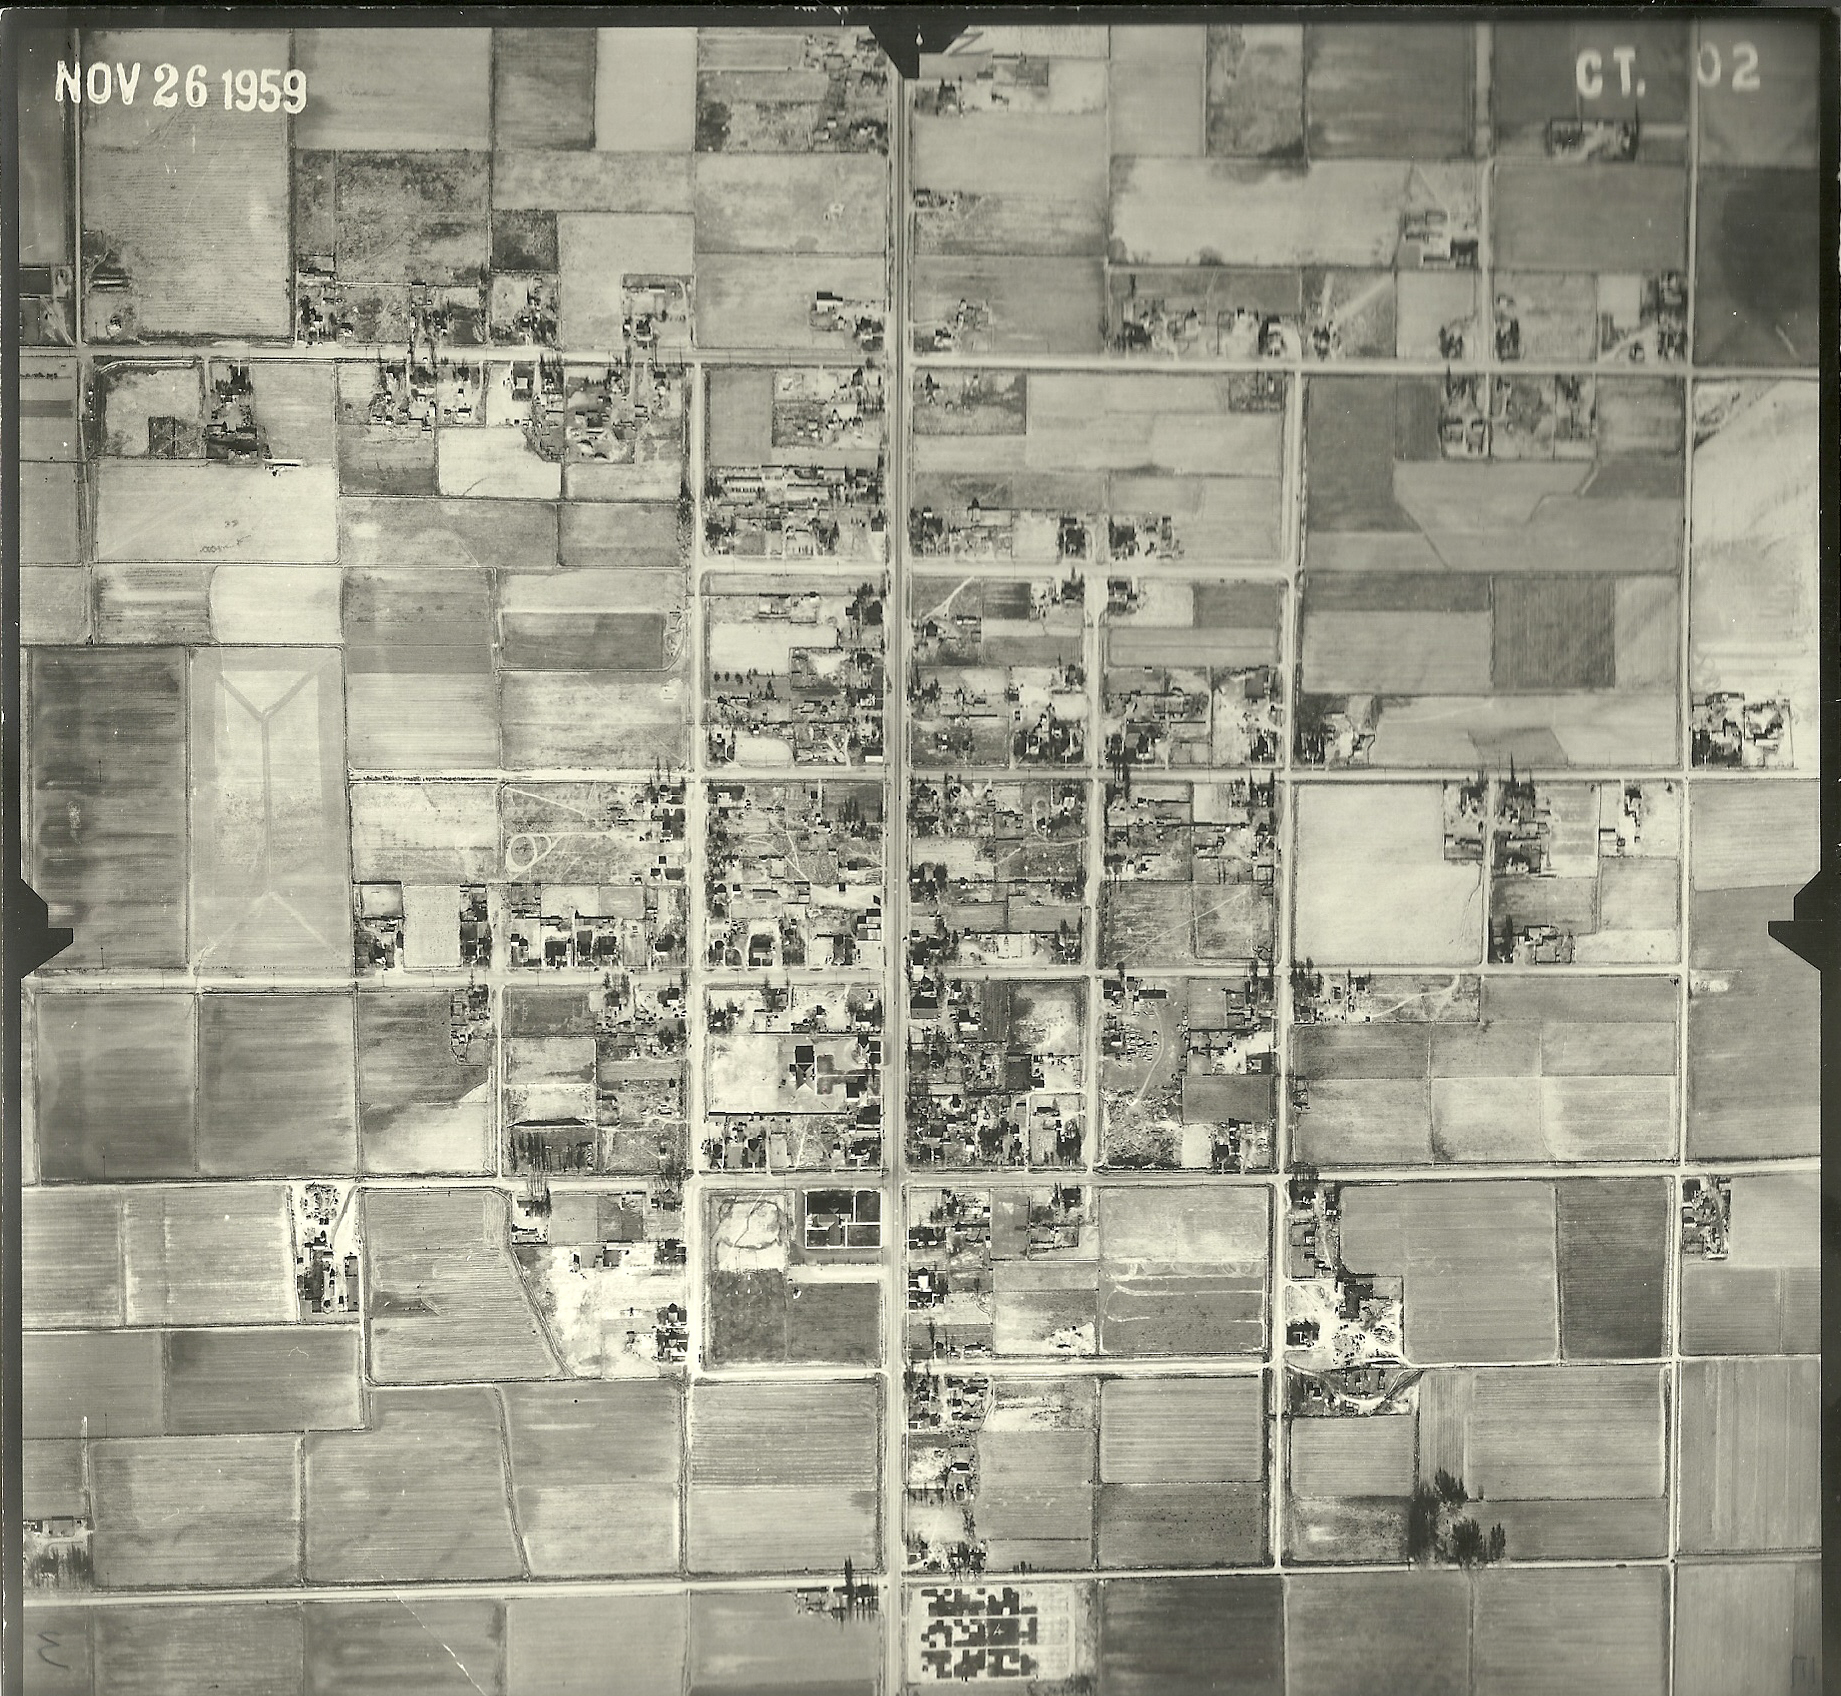 1959 Aerial View